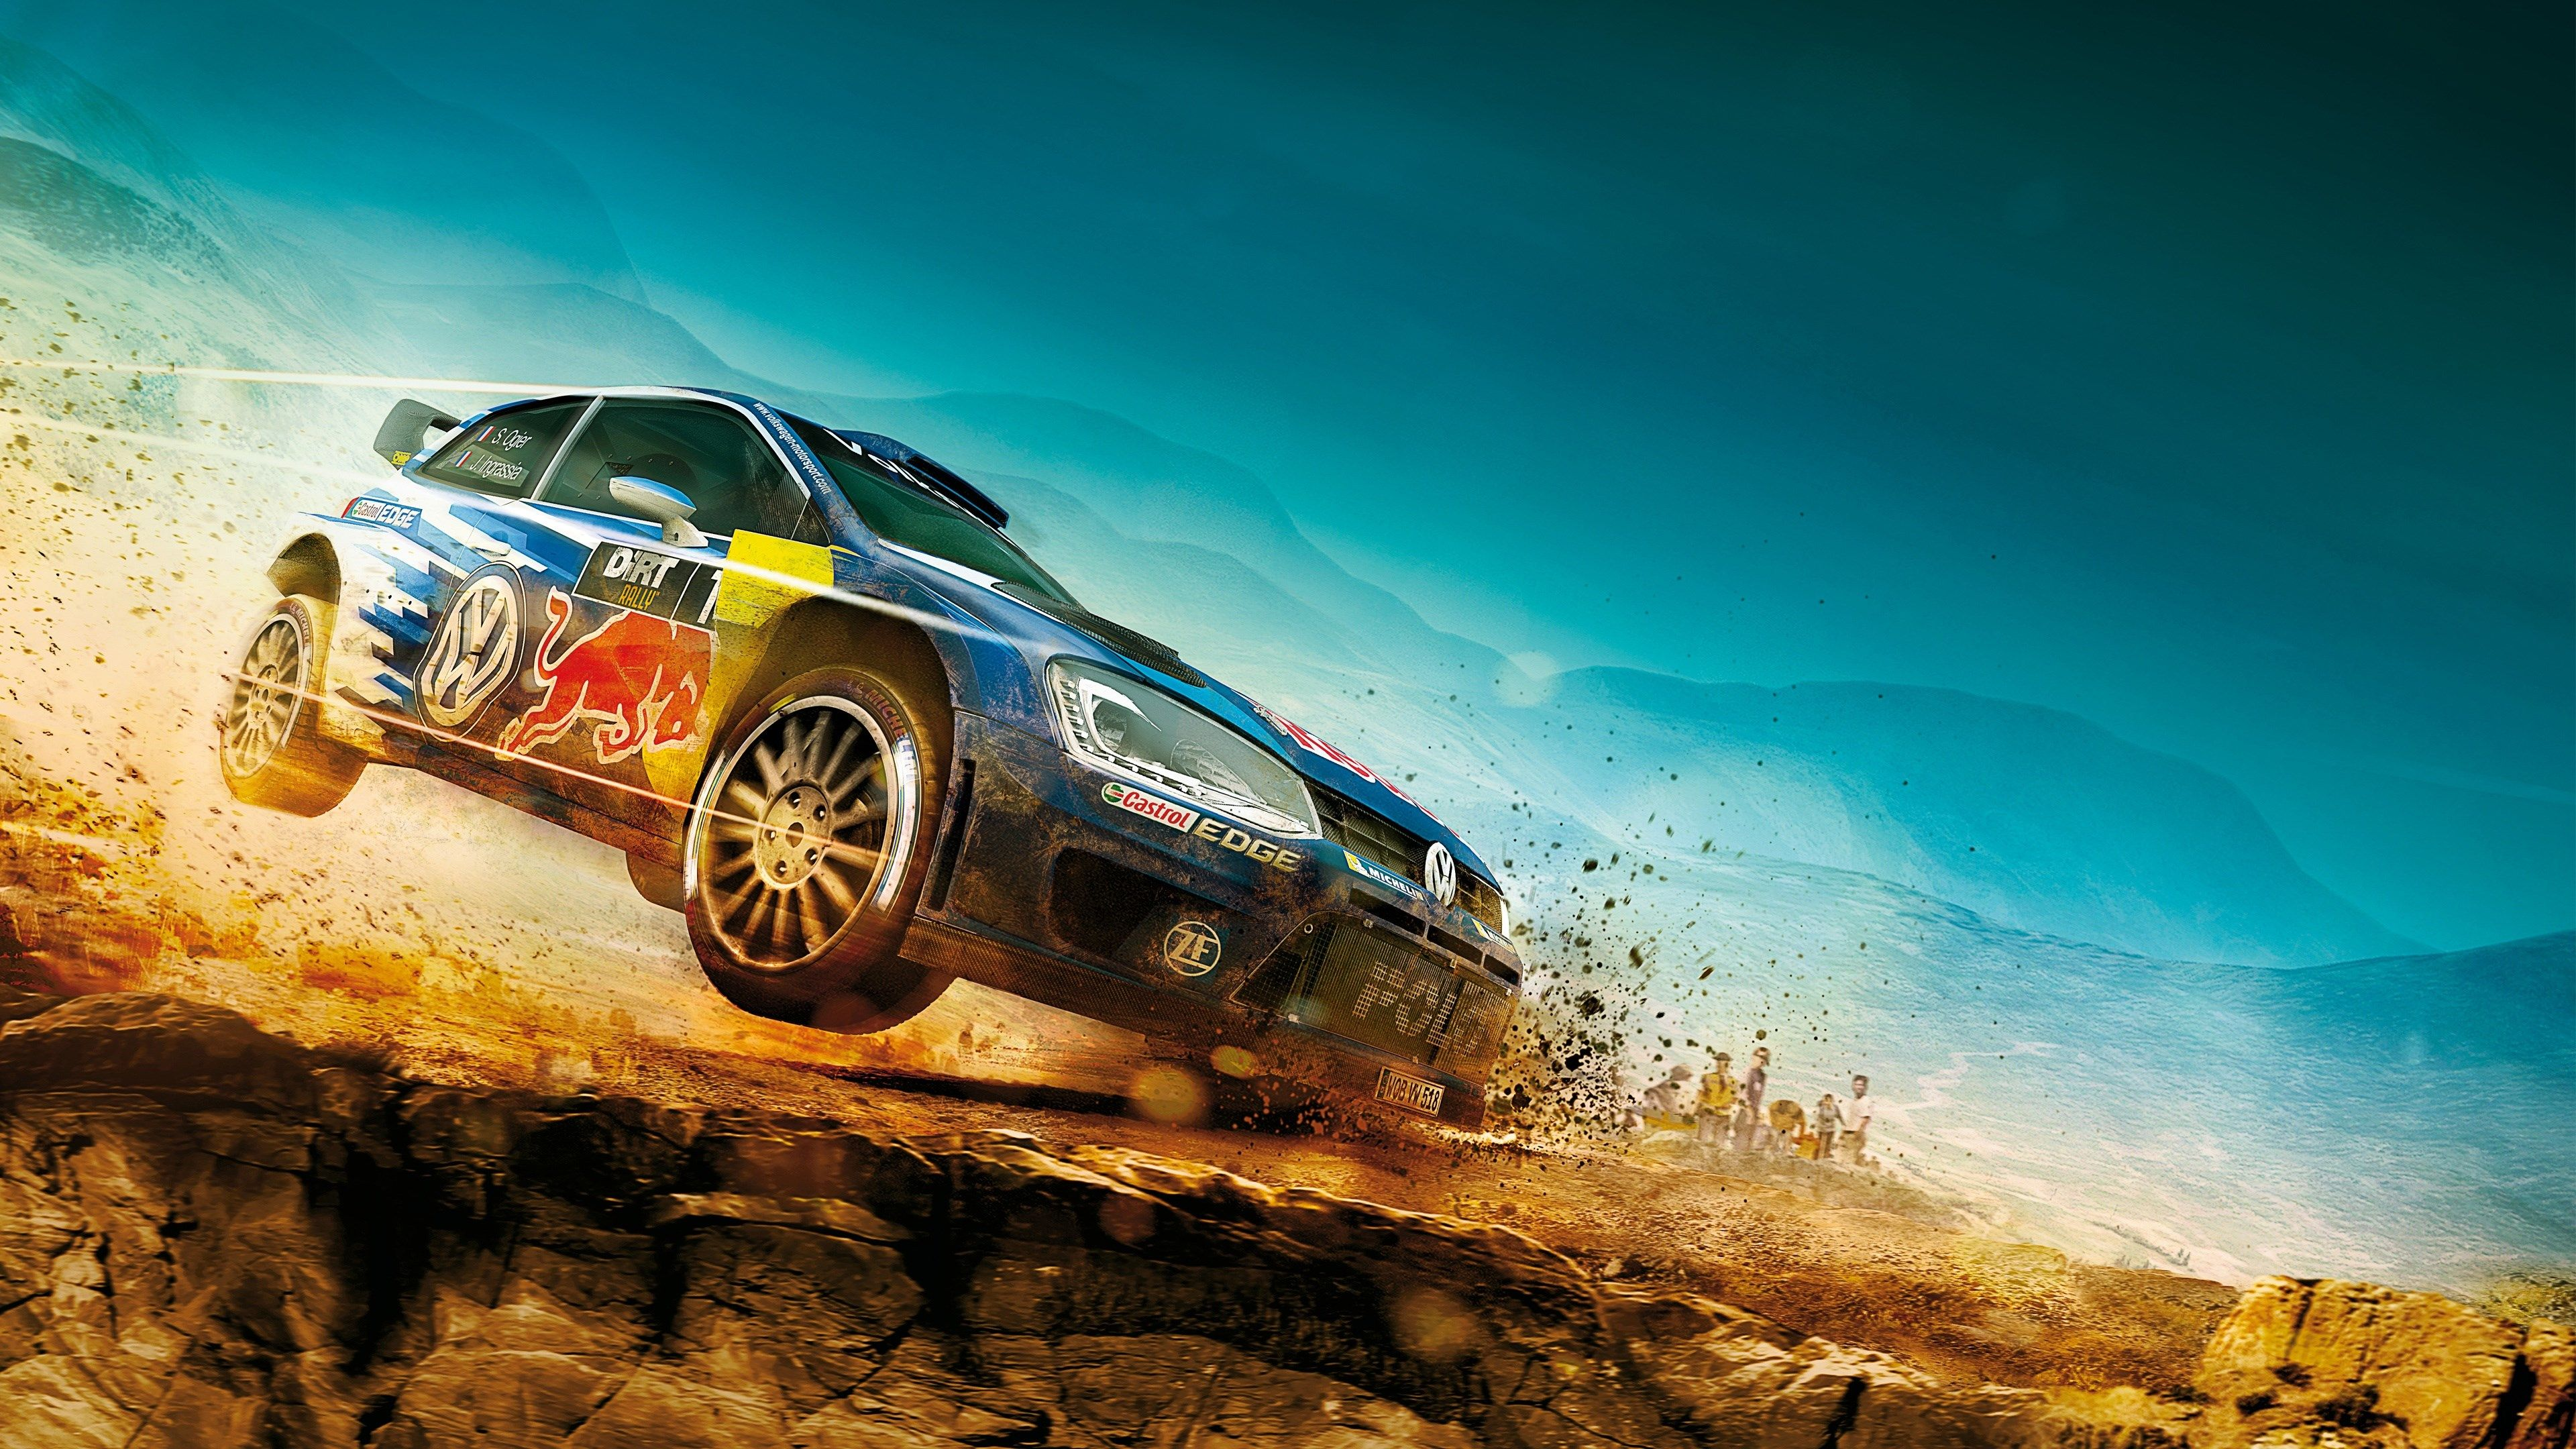 4k Wallpaper Dirt Rally 3840x2160 With Images Car Wallpapers